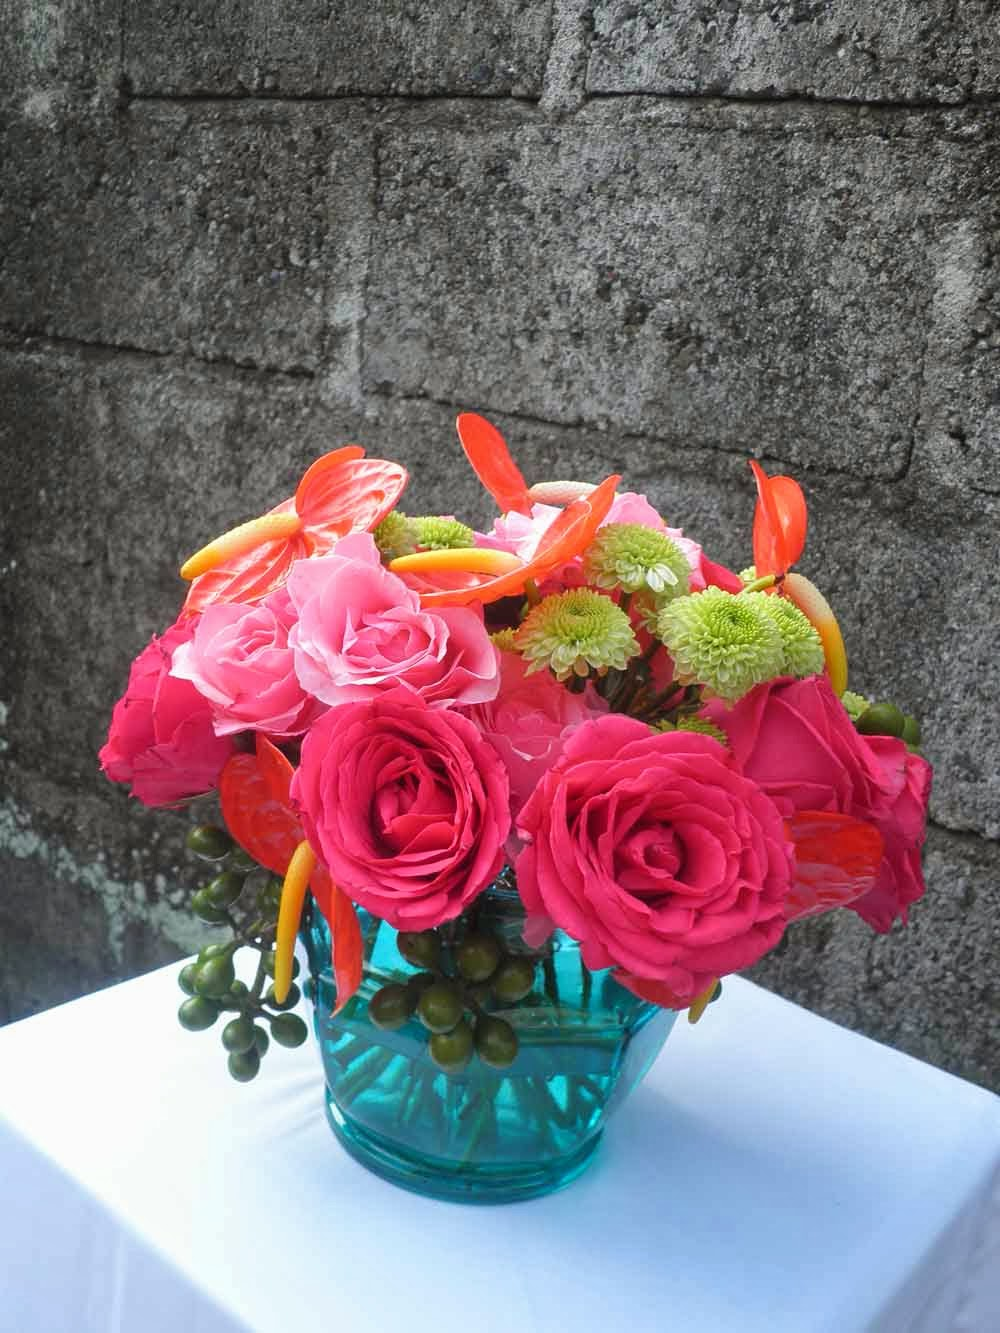 turquoise vase-hot pink rose, pink rose, red anthurium and green spra